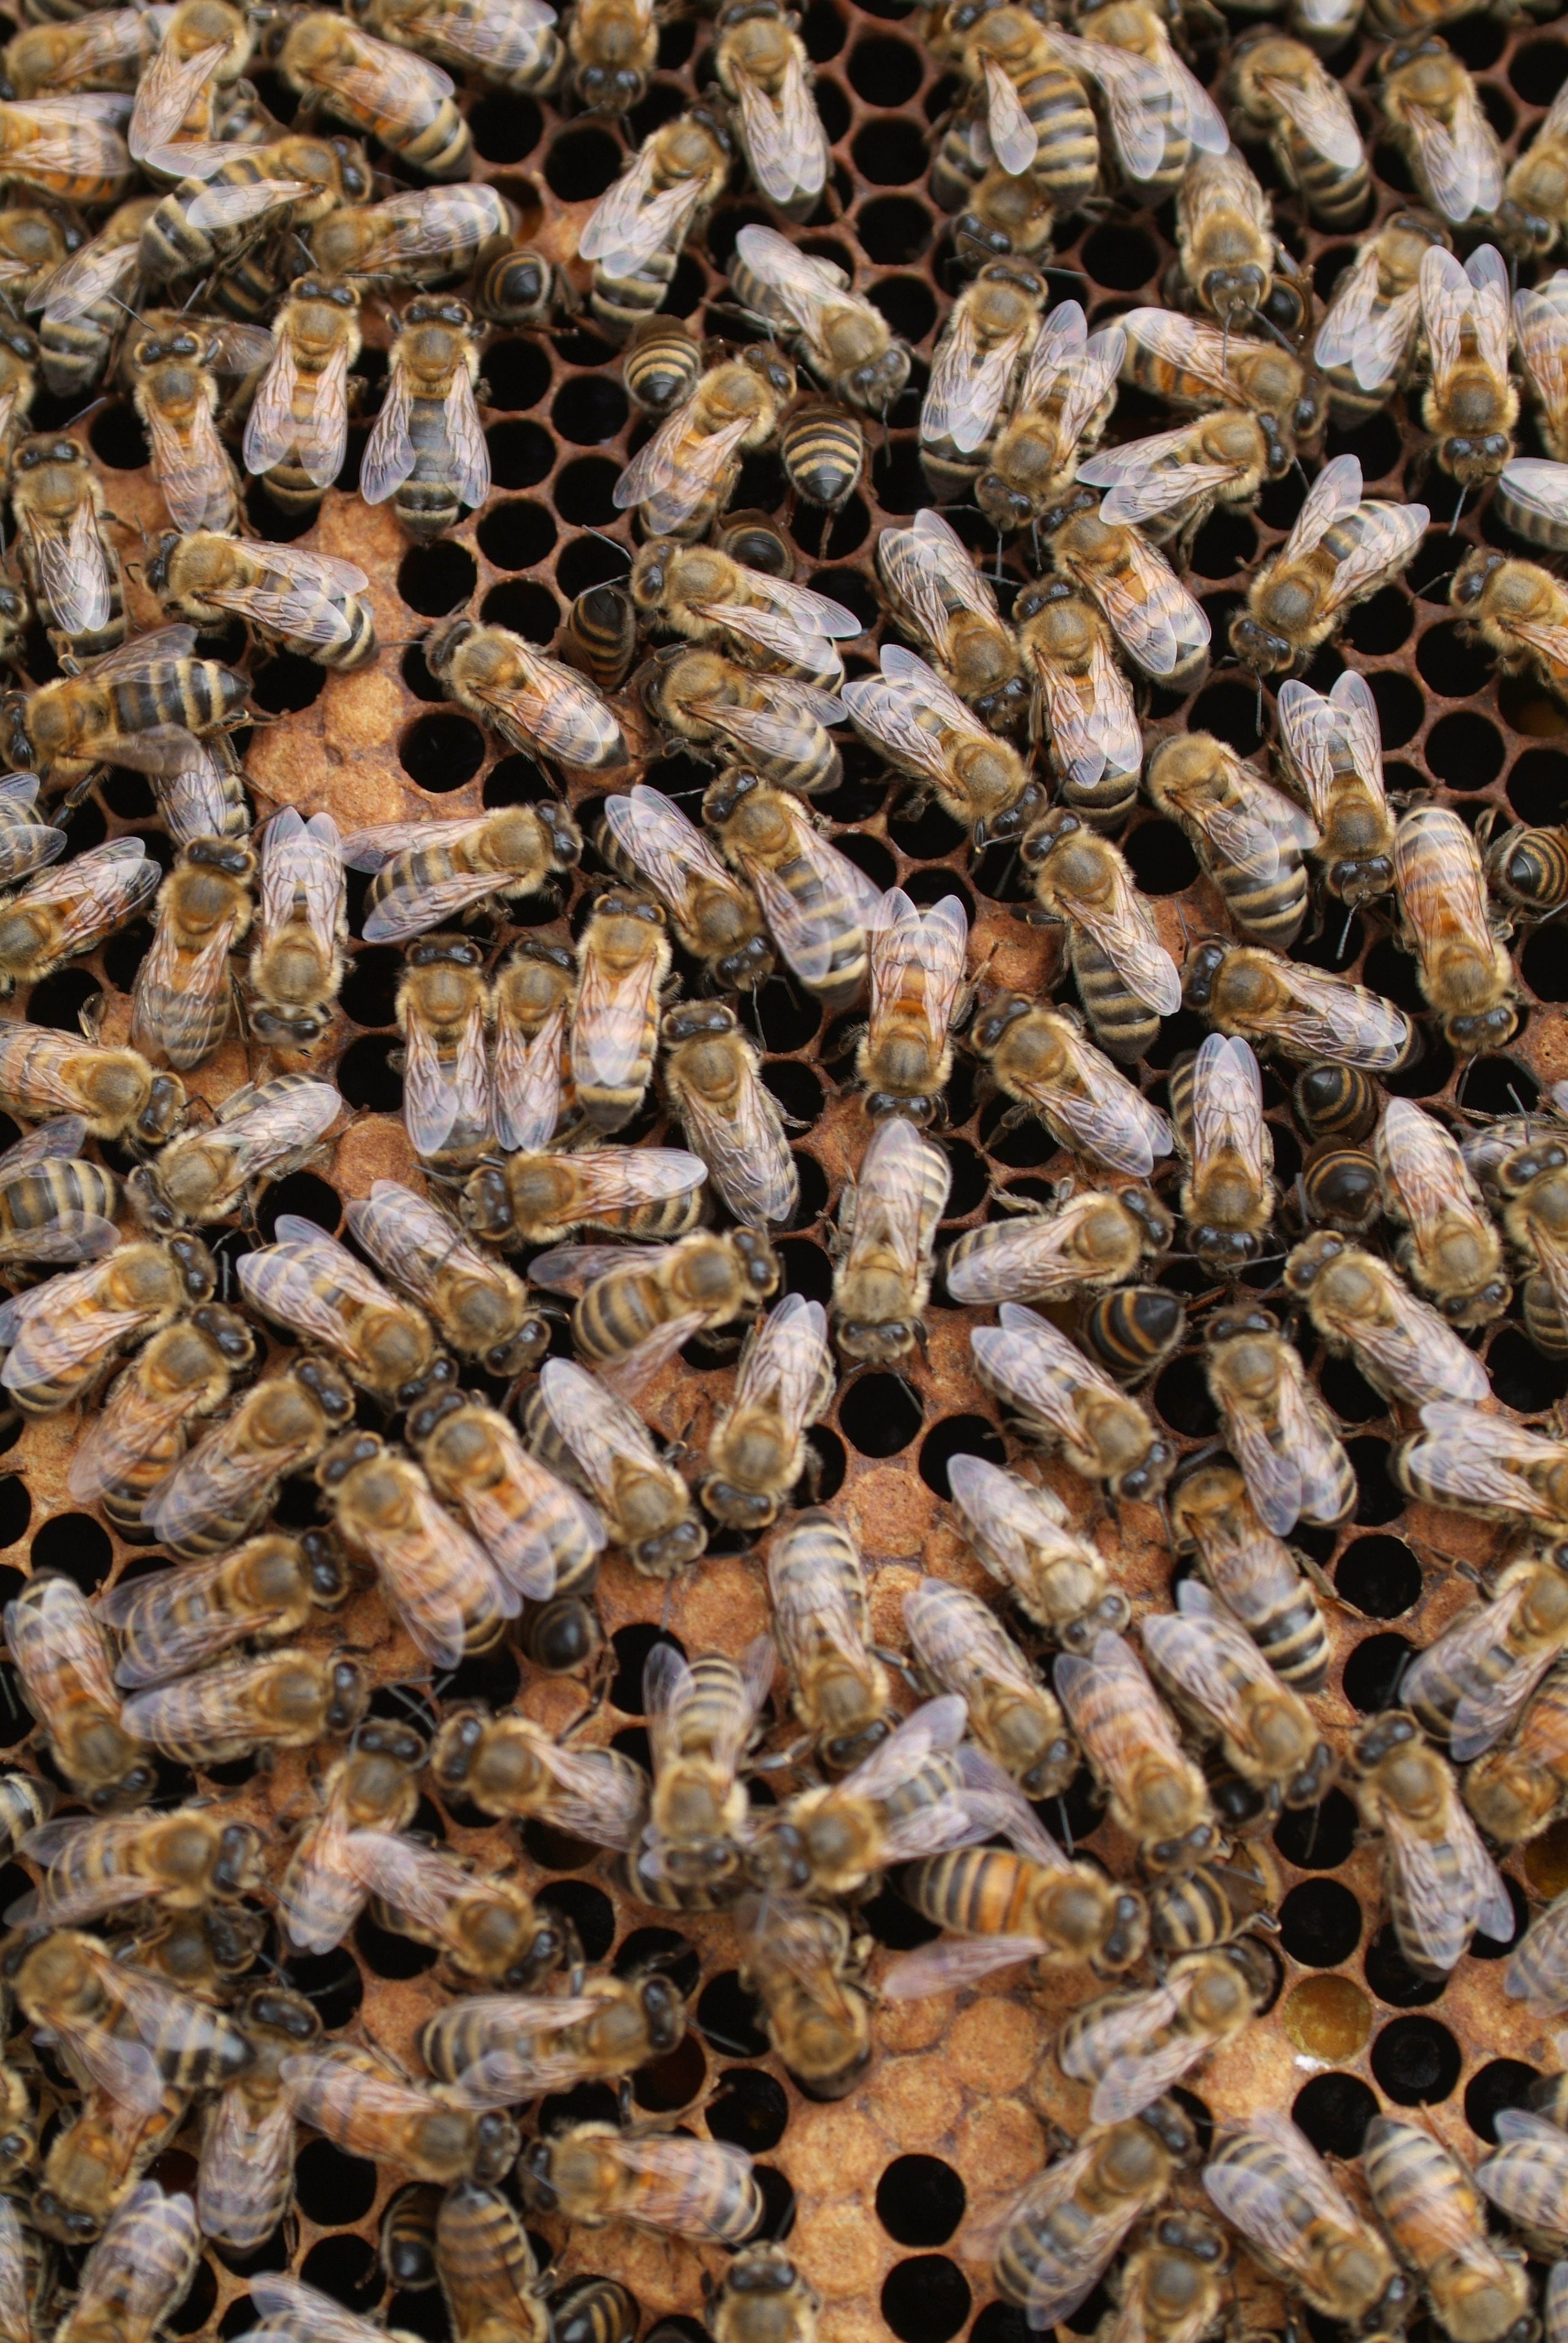 Louisiana group develops plan to protect bees